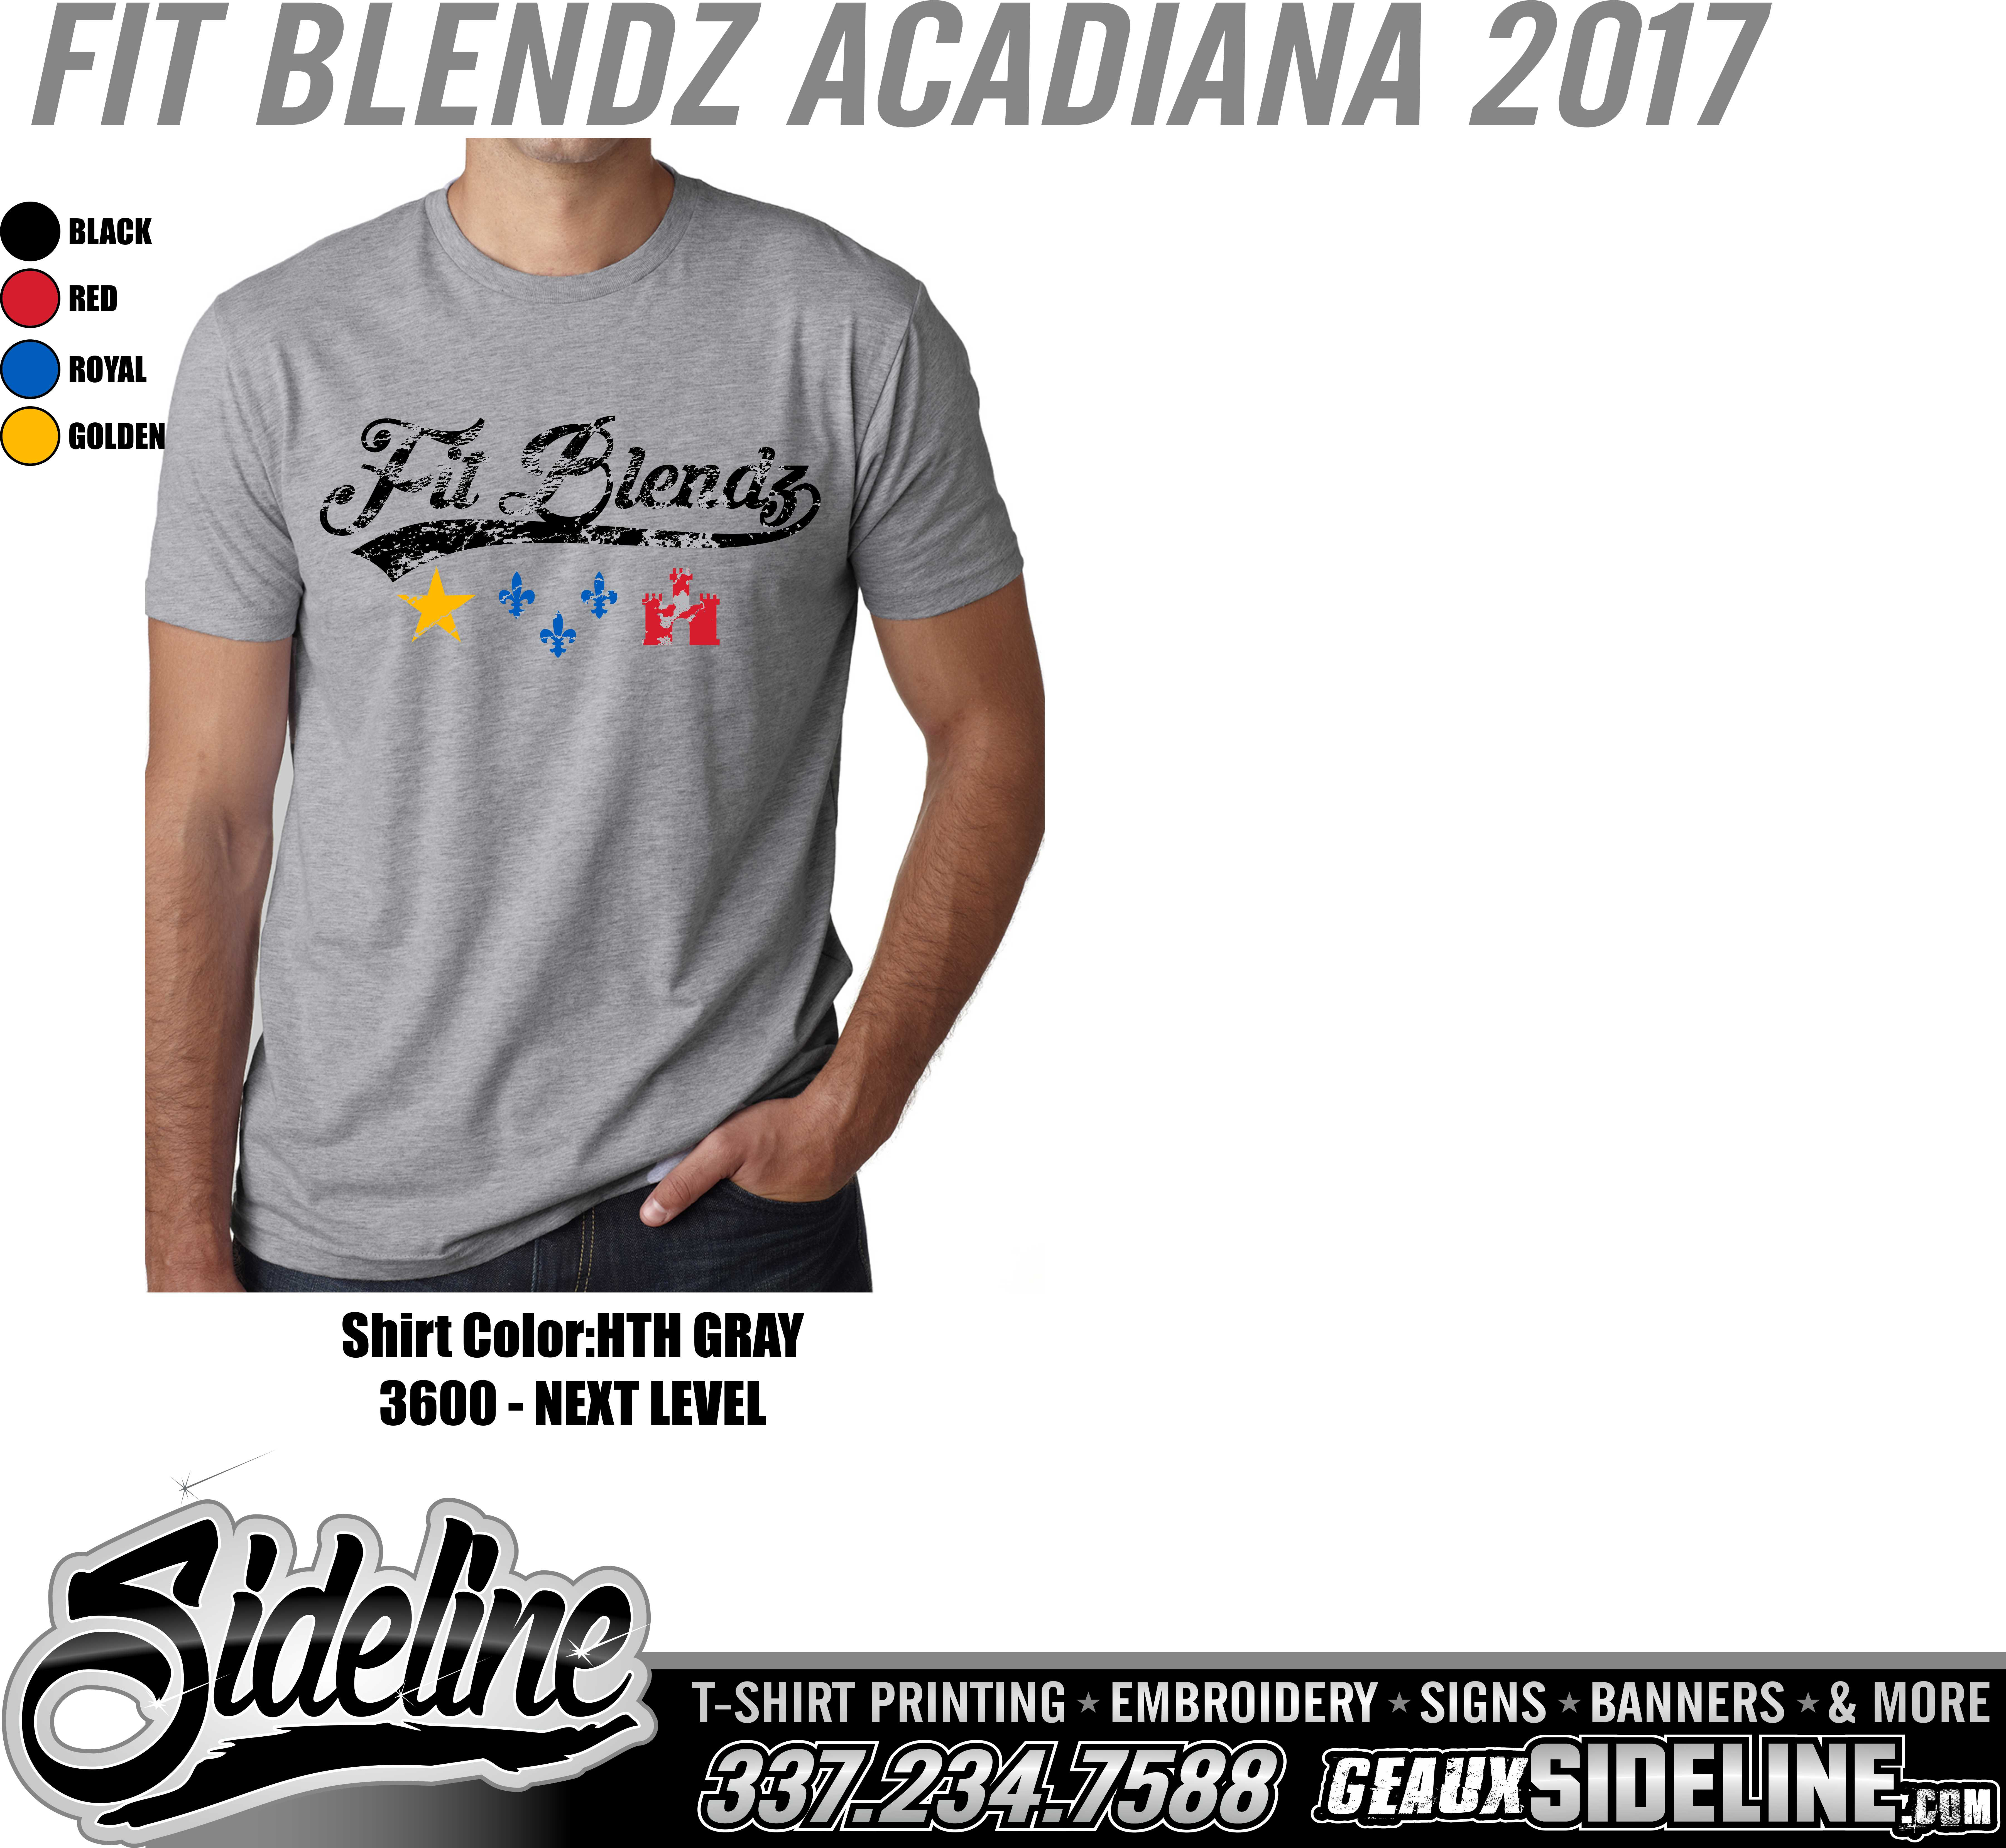 FIT BLENDZ ACADIANA 2017 - HTH GRAY